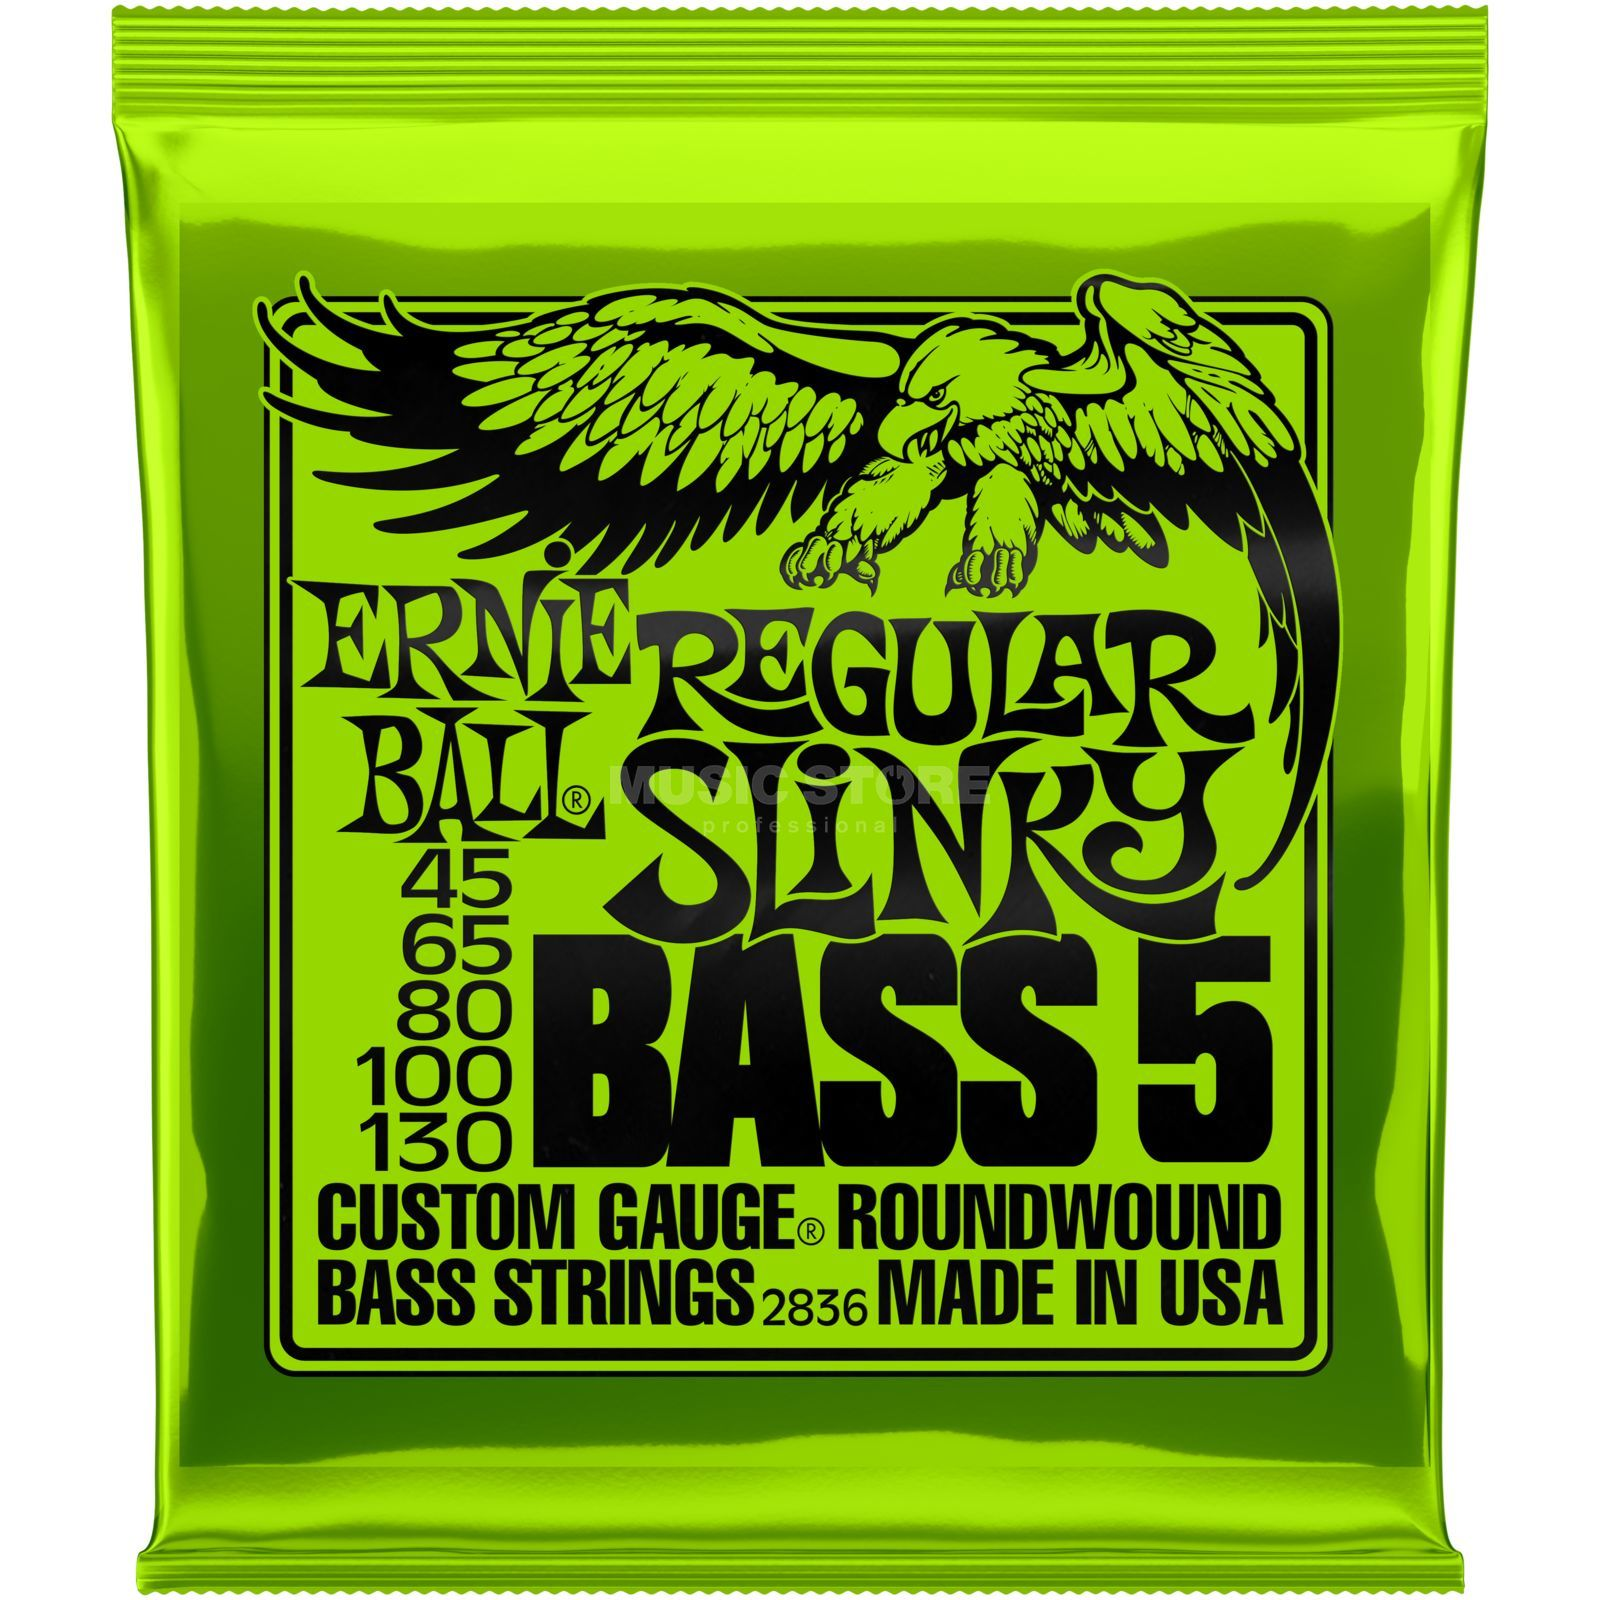 Ernie Ball Bass Strings 45-130 Regular Roundwound Long Scale Produktbillede